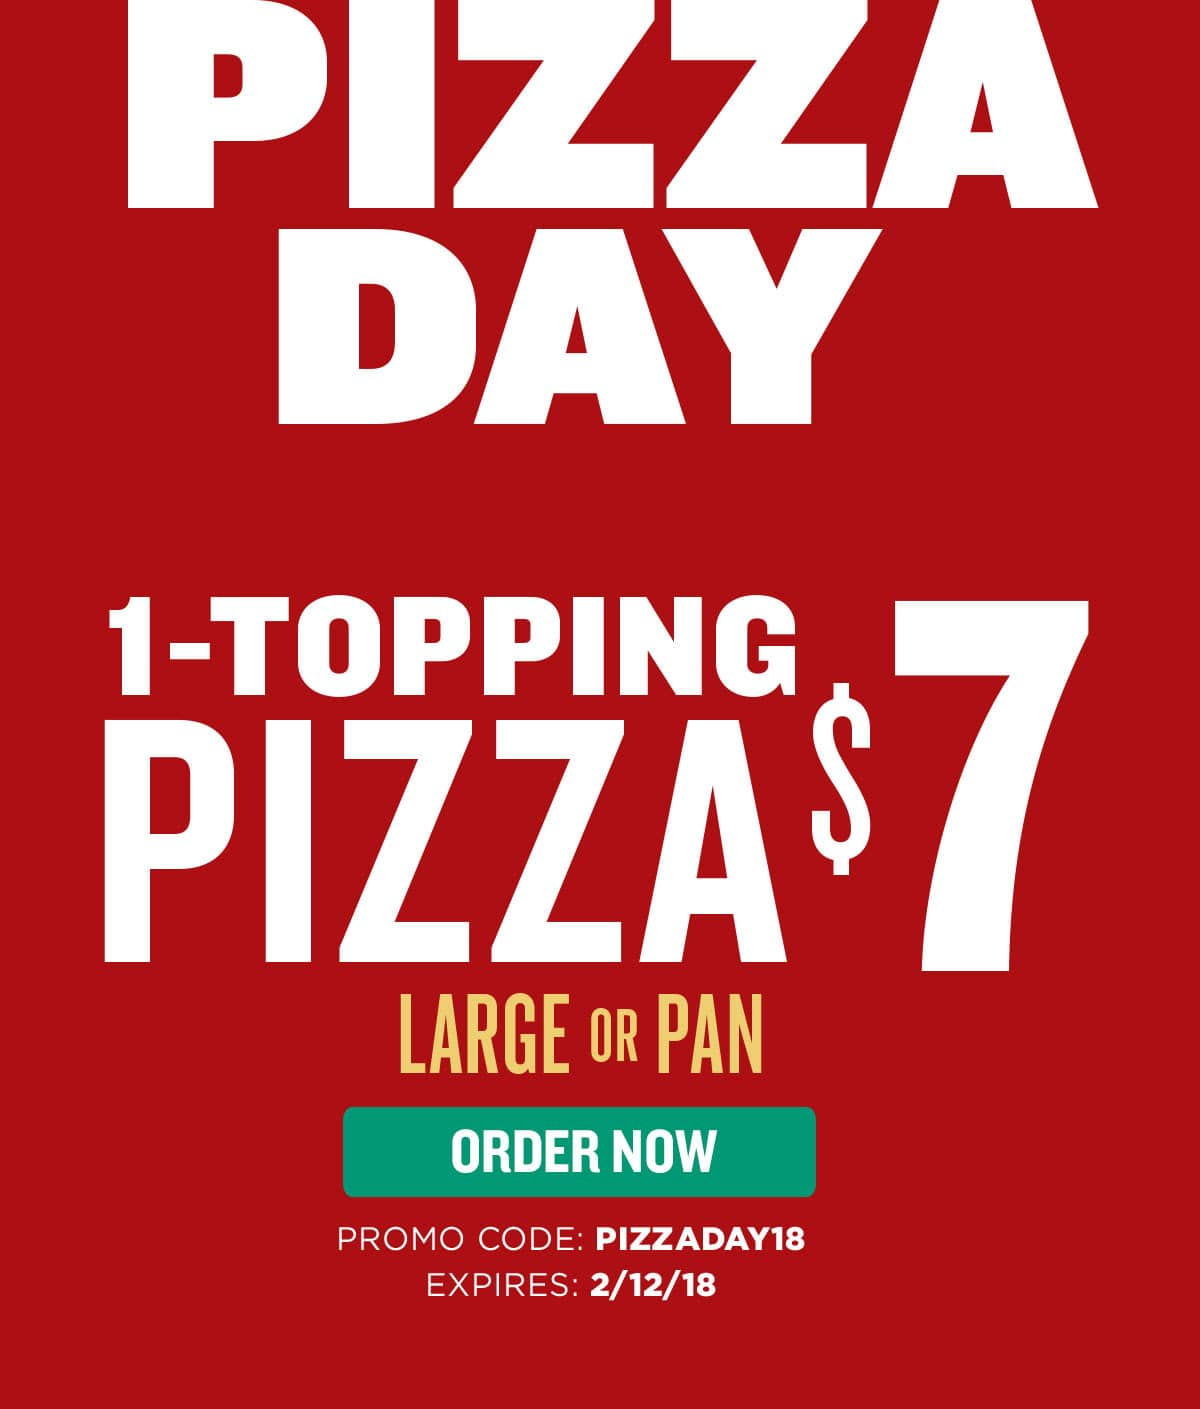 $7 Large 1 Topping Pizza- Papa Johns With promo code PIZZADAY18